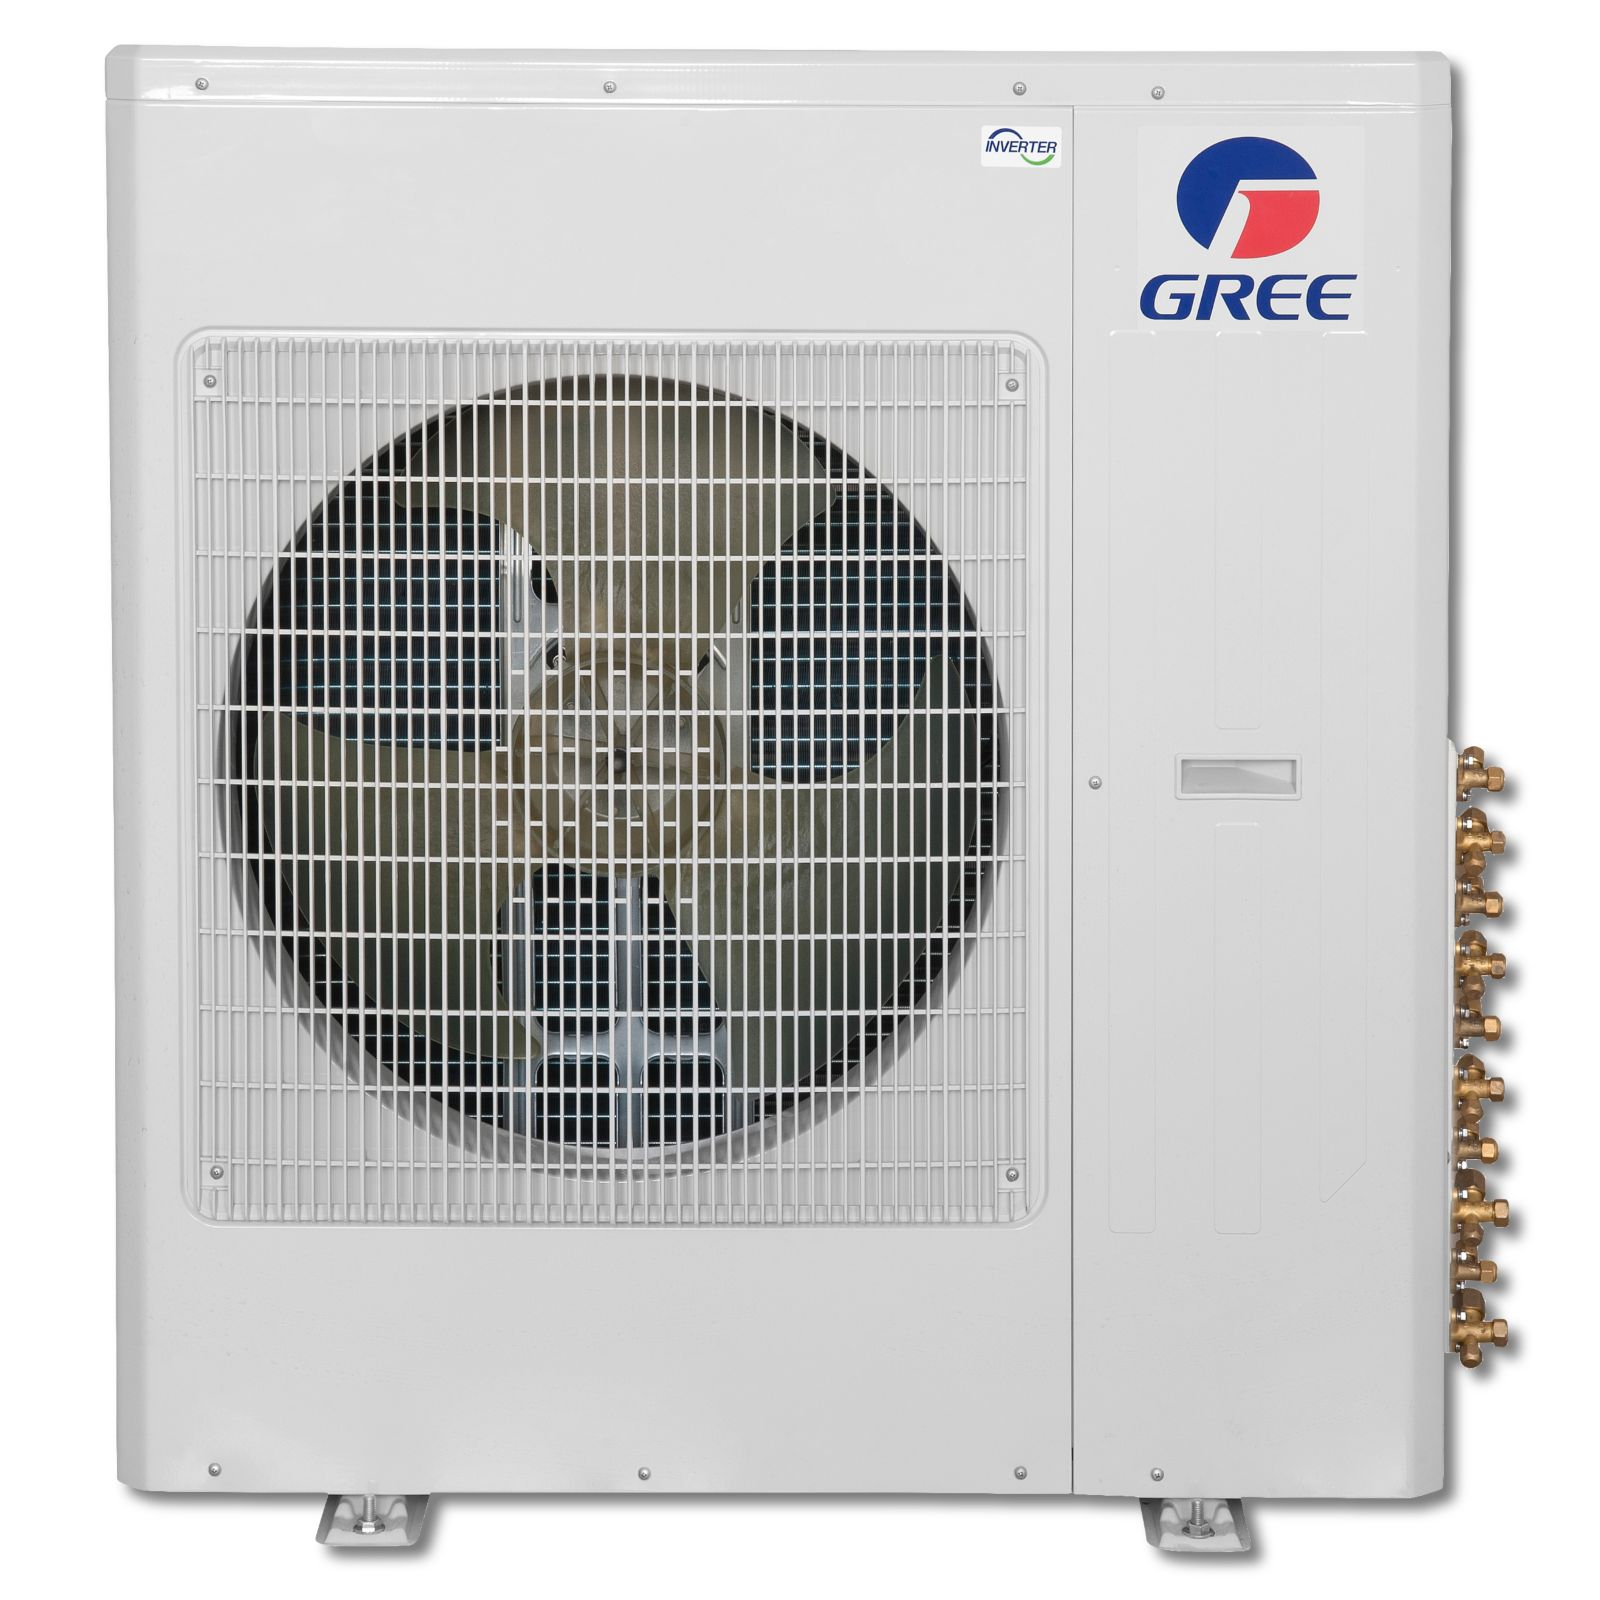 GREE MULTI36HP230V1BO - 3 Ton, 16 SEER EVO+ Multi Ductless Mini-Split Heat Pump 208-230/1/60 High Efficiency